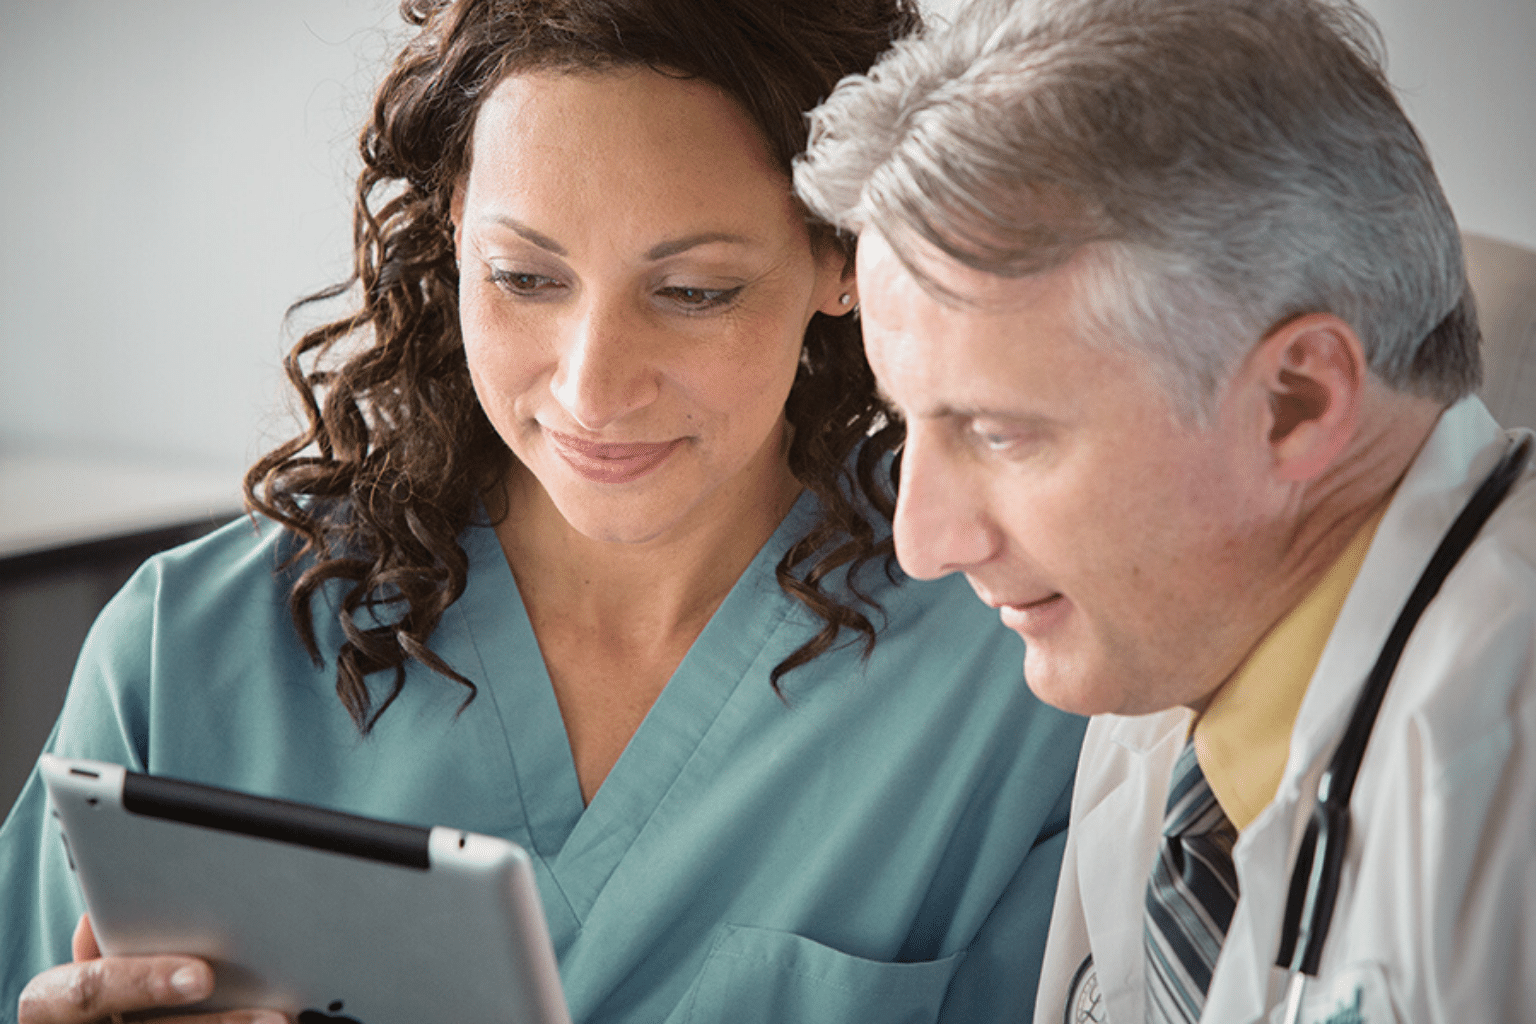 Two clinicians consulting